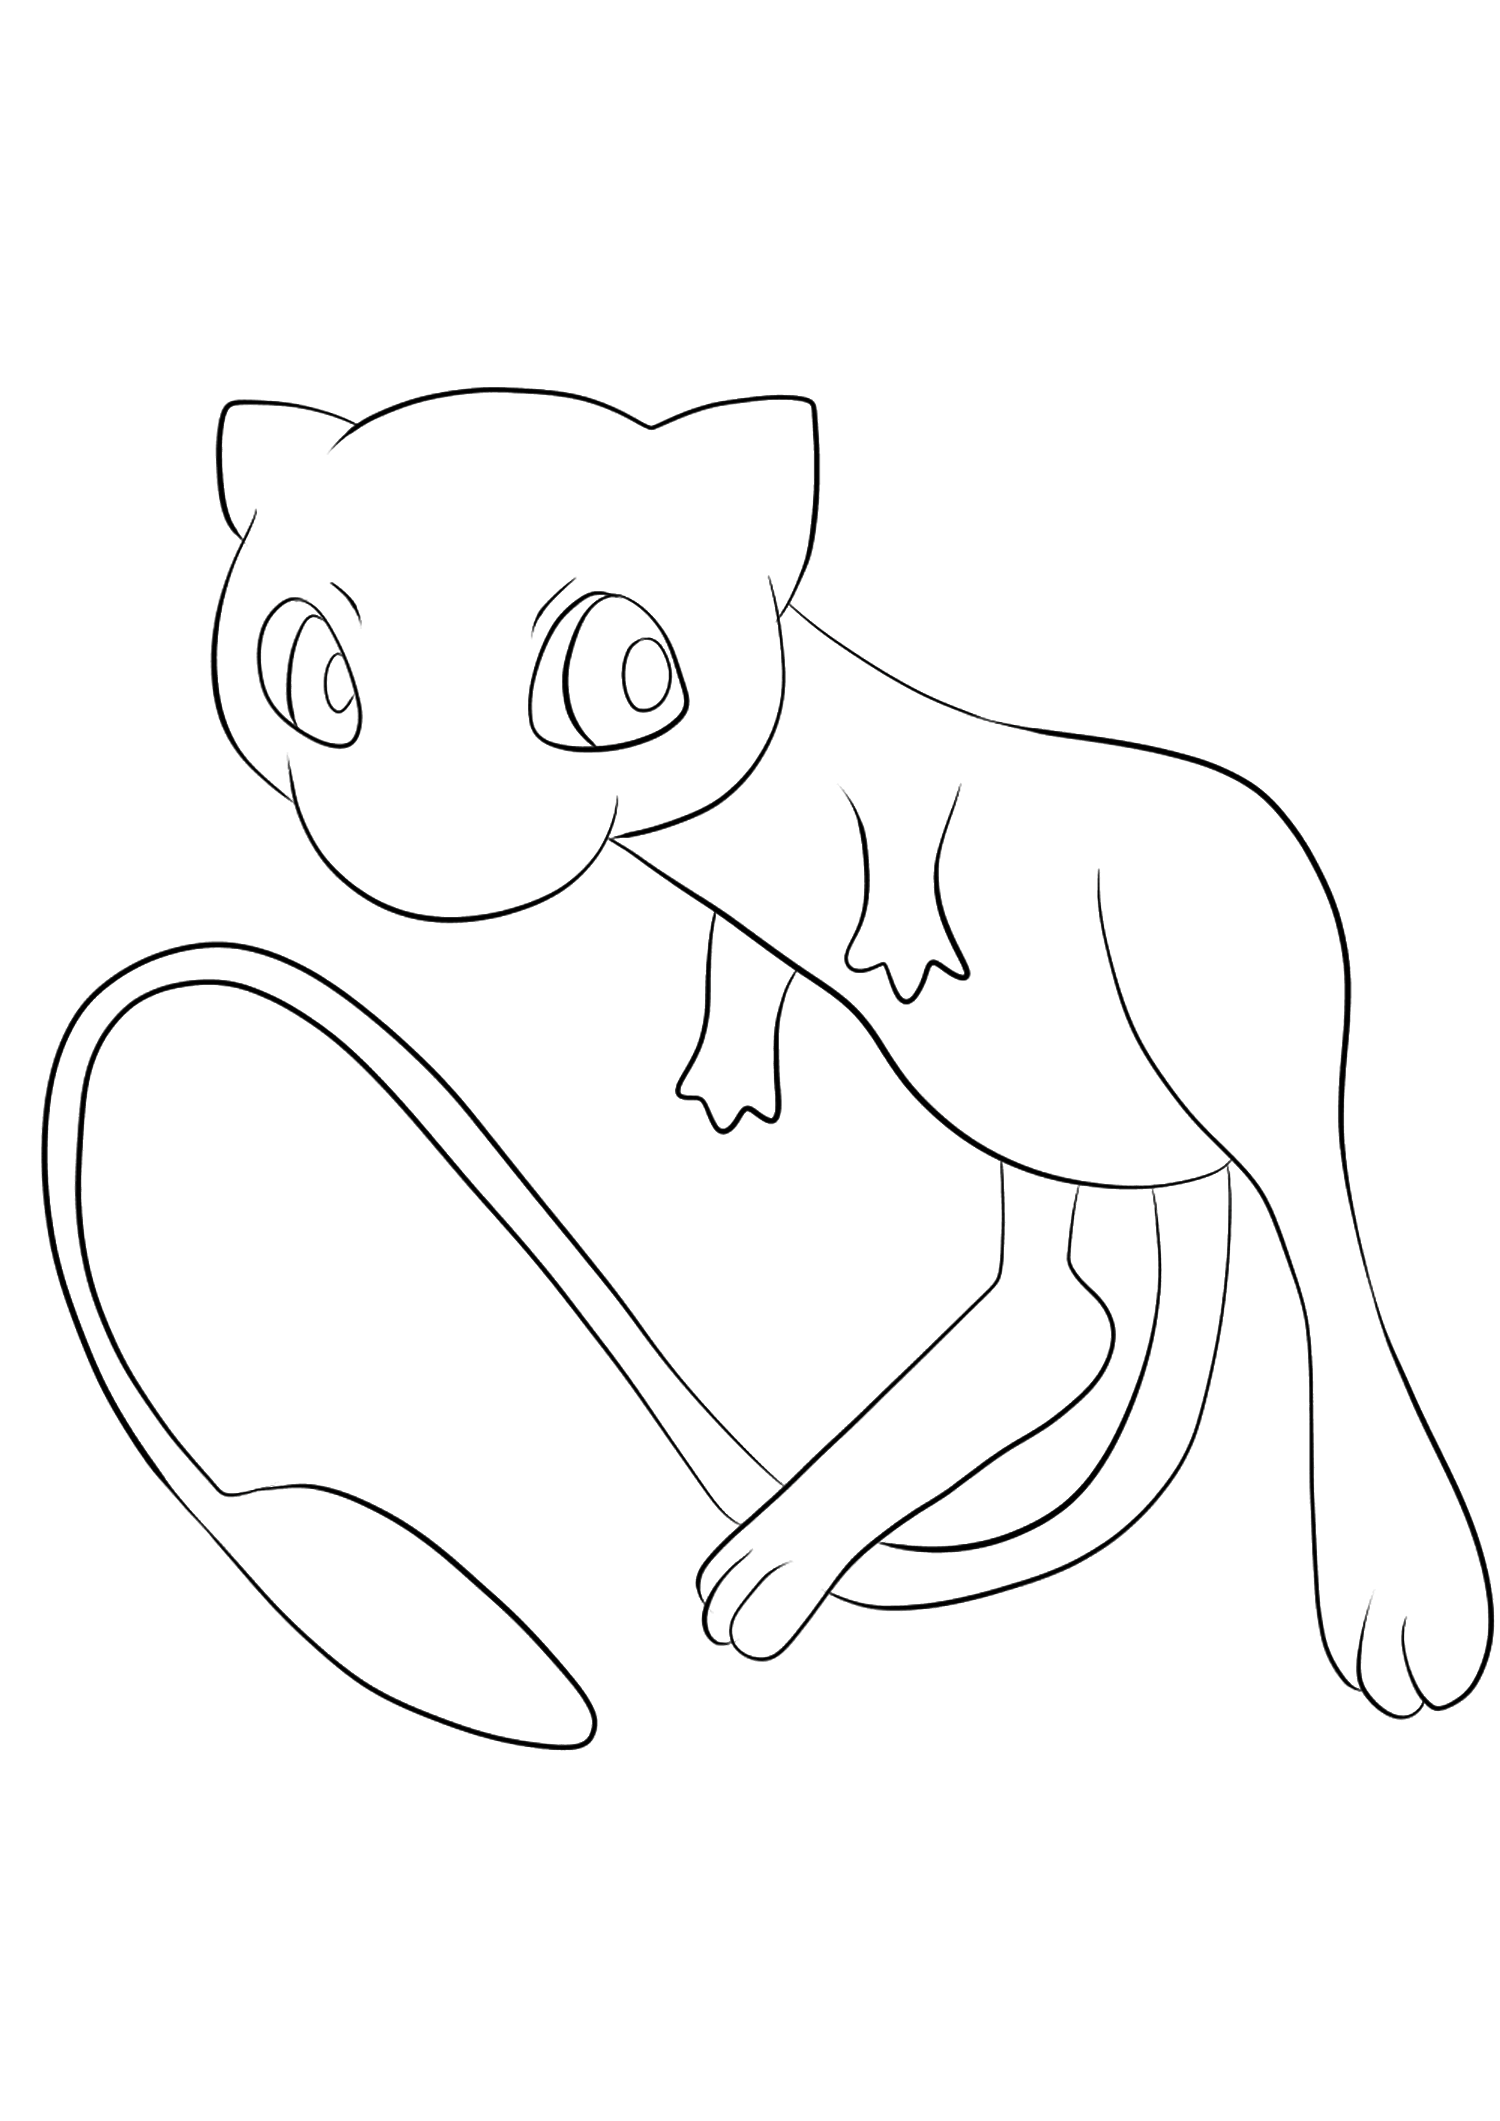 Mew No 151 Pokemon Generation Ii All Pokemon Coloring Pages Kids Coloring Pages